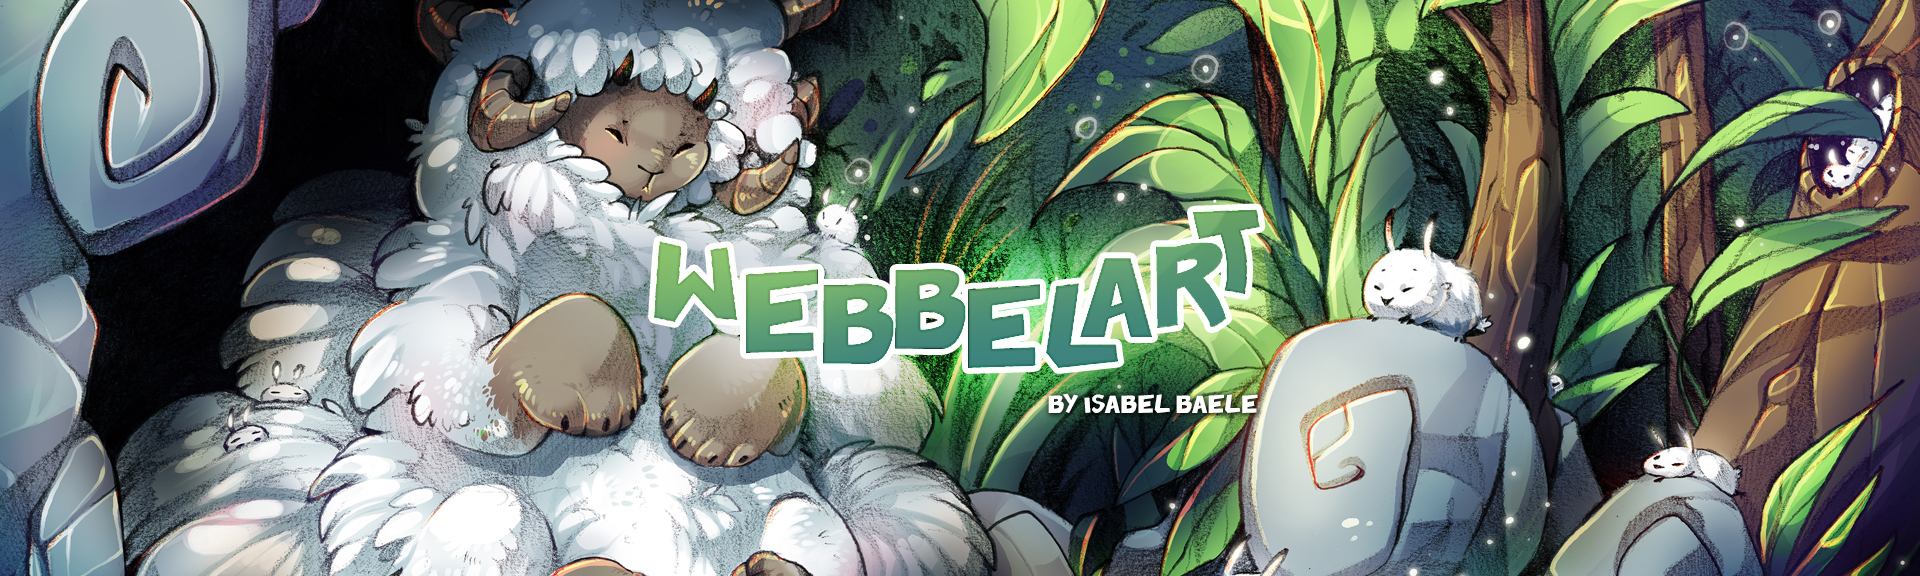 webbelart the sheppard illustration banner